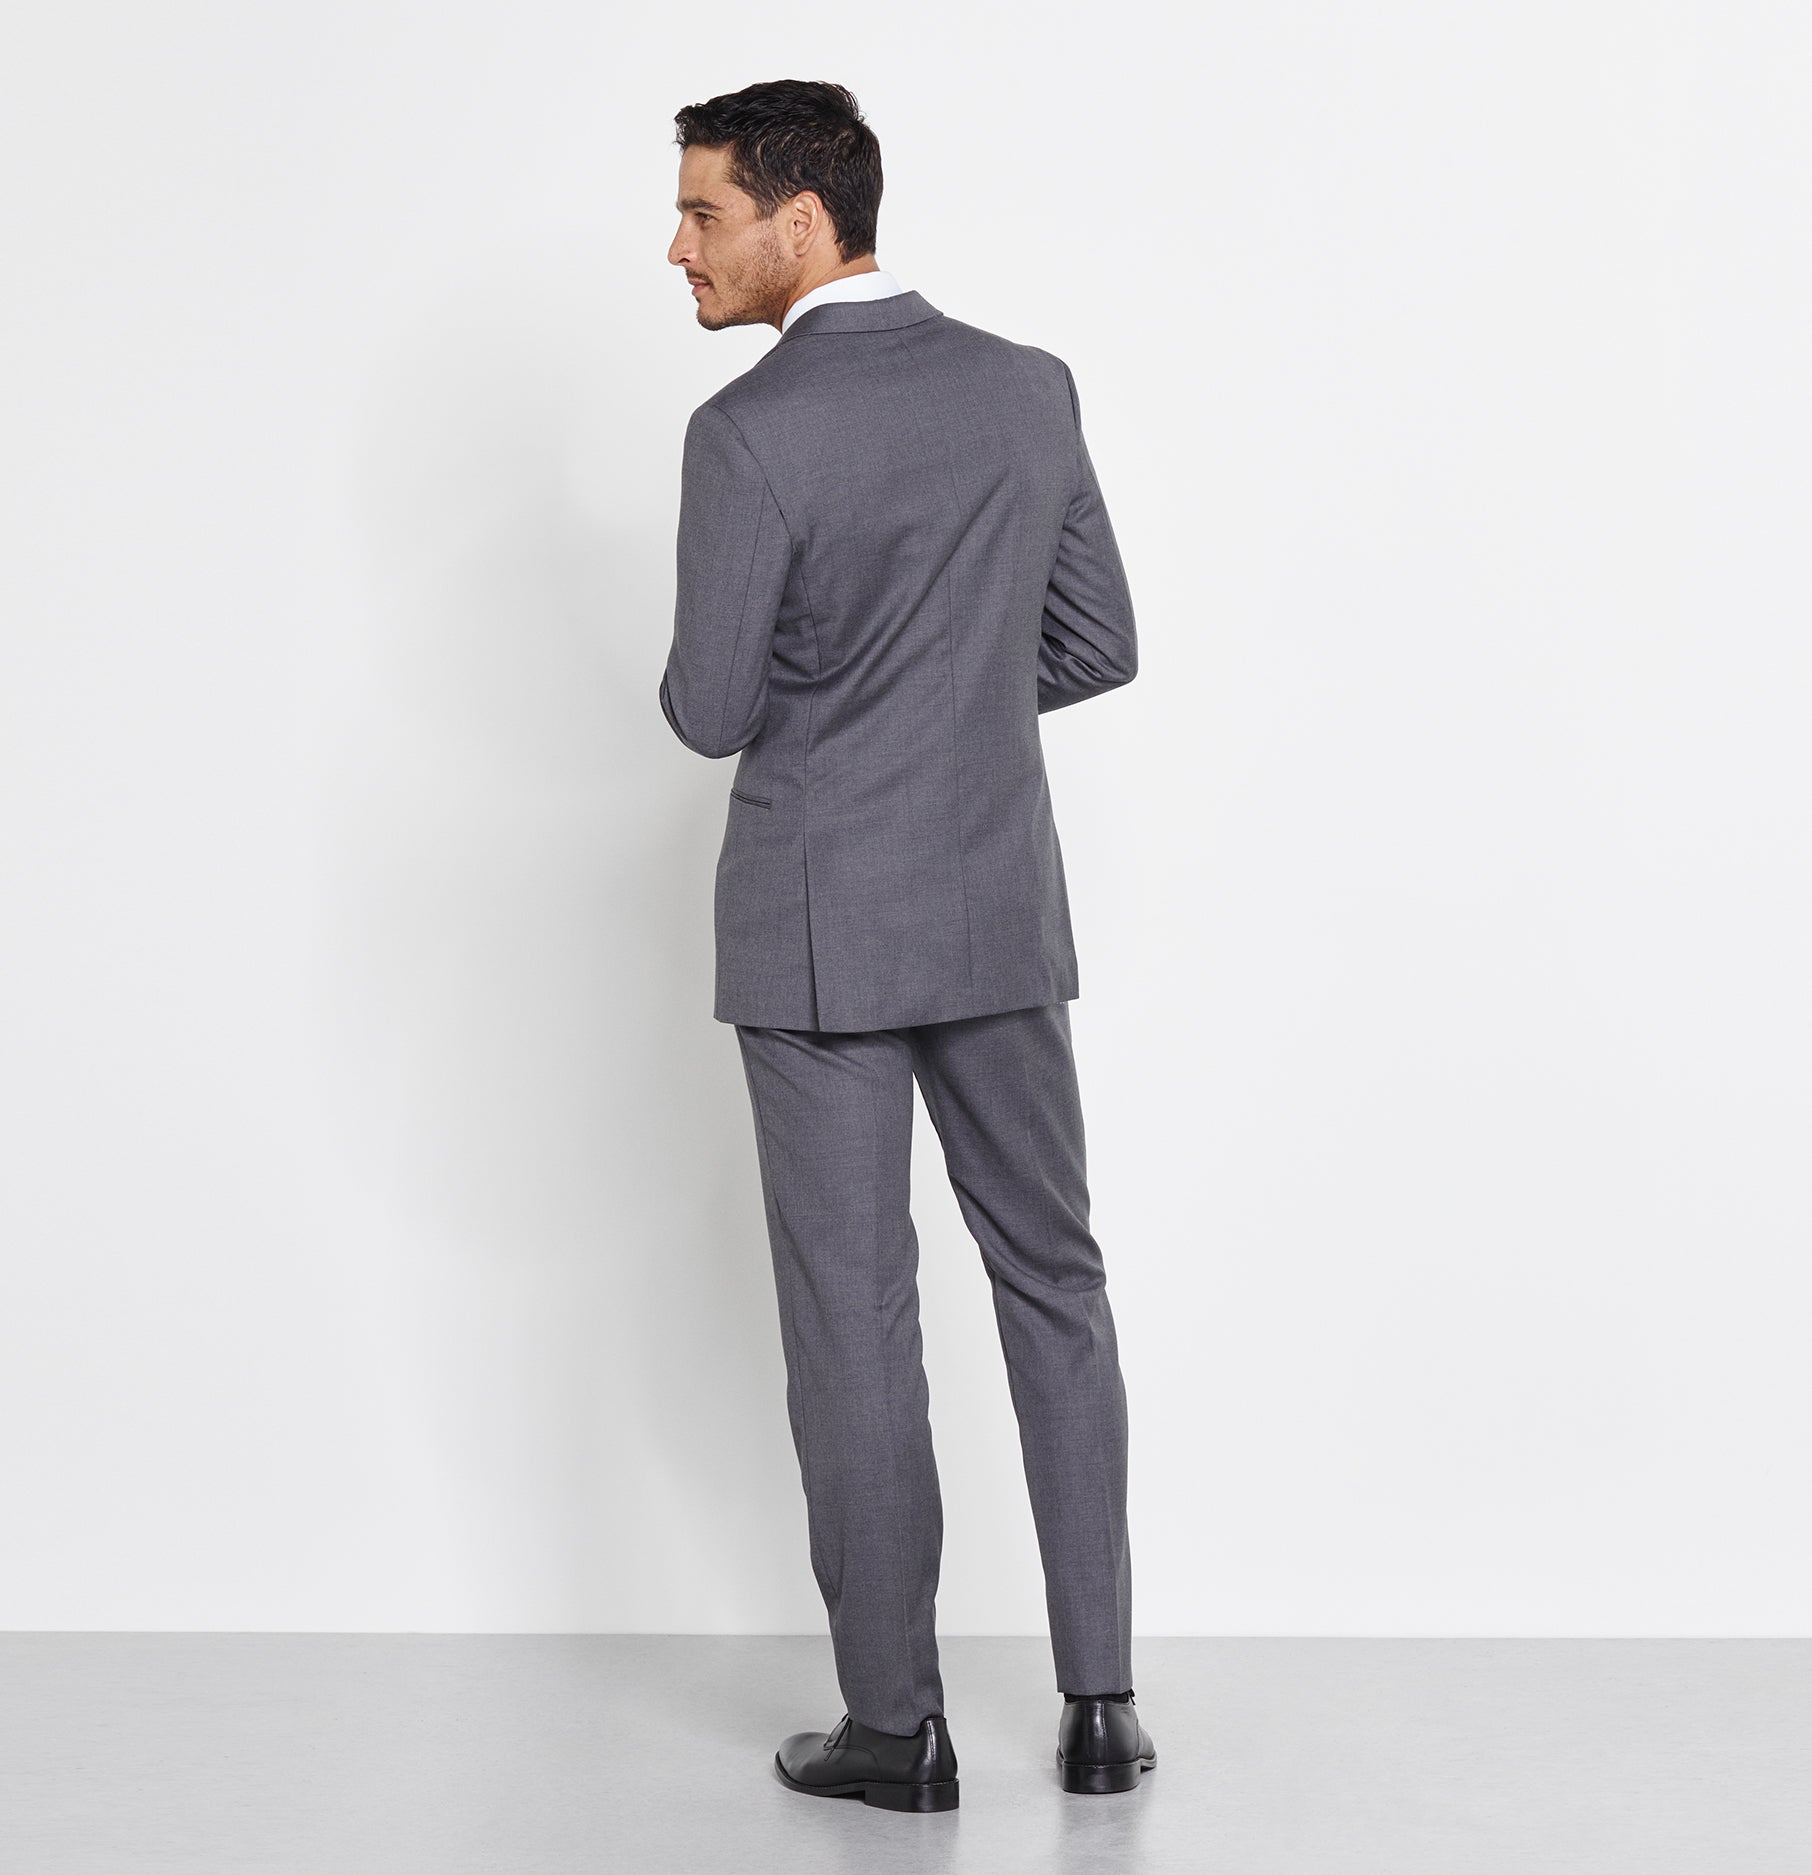 Grey Suit | The Black Tux